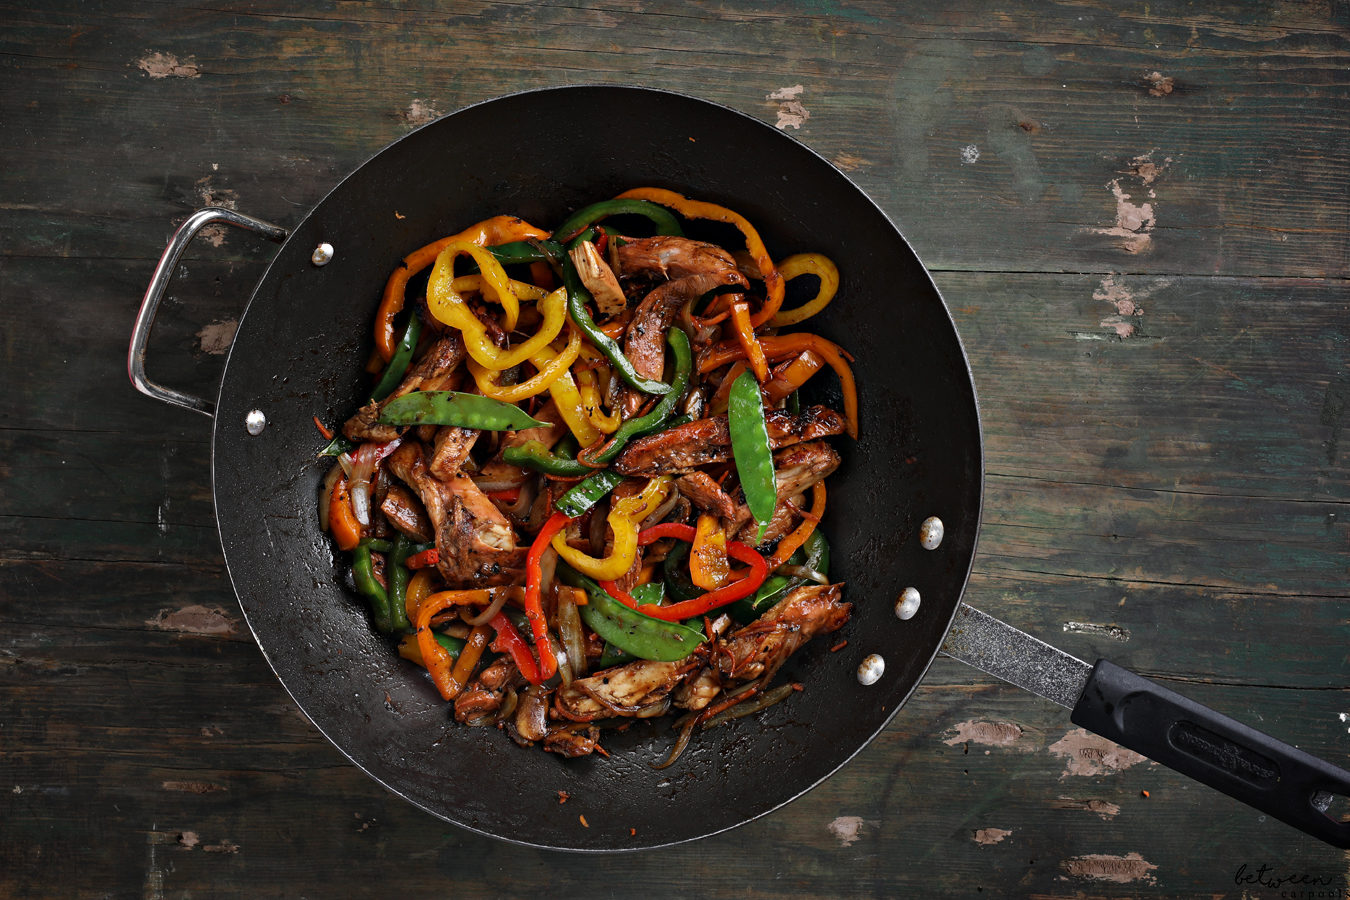 Dinner Express: Chicken Teriyaki Stir-Fry. No time to cook tonight? Make this (almost) completely effortless chicken stir-fry in minutes